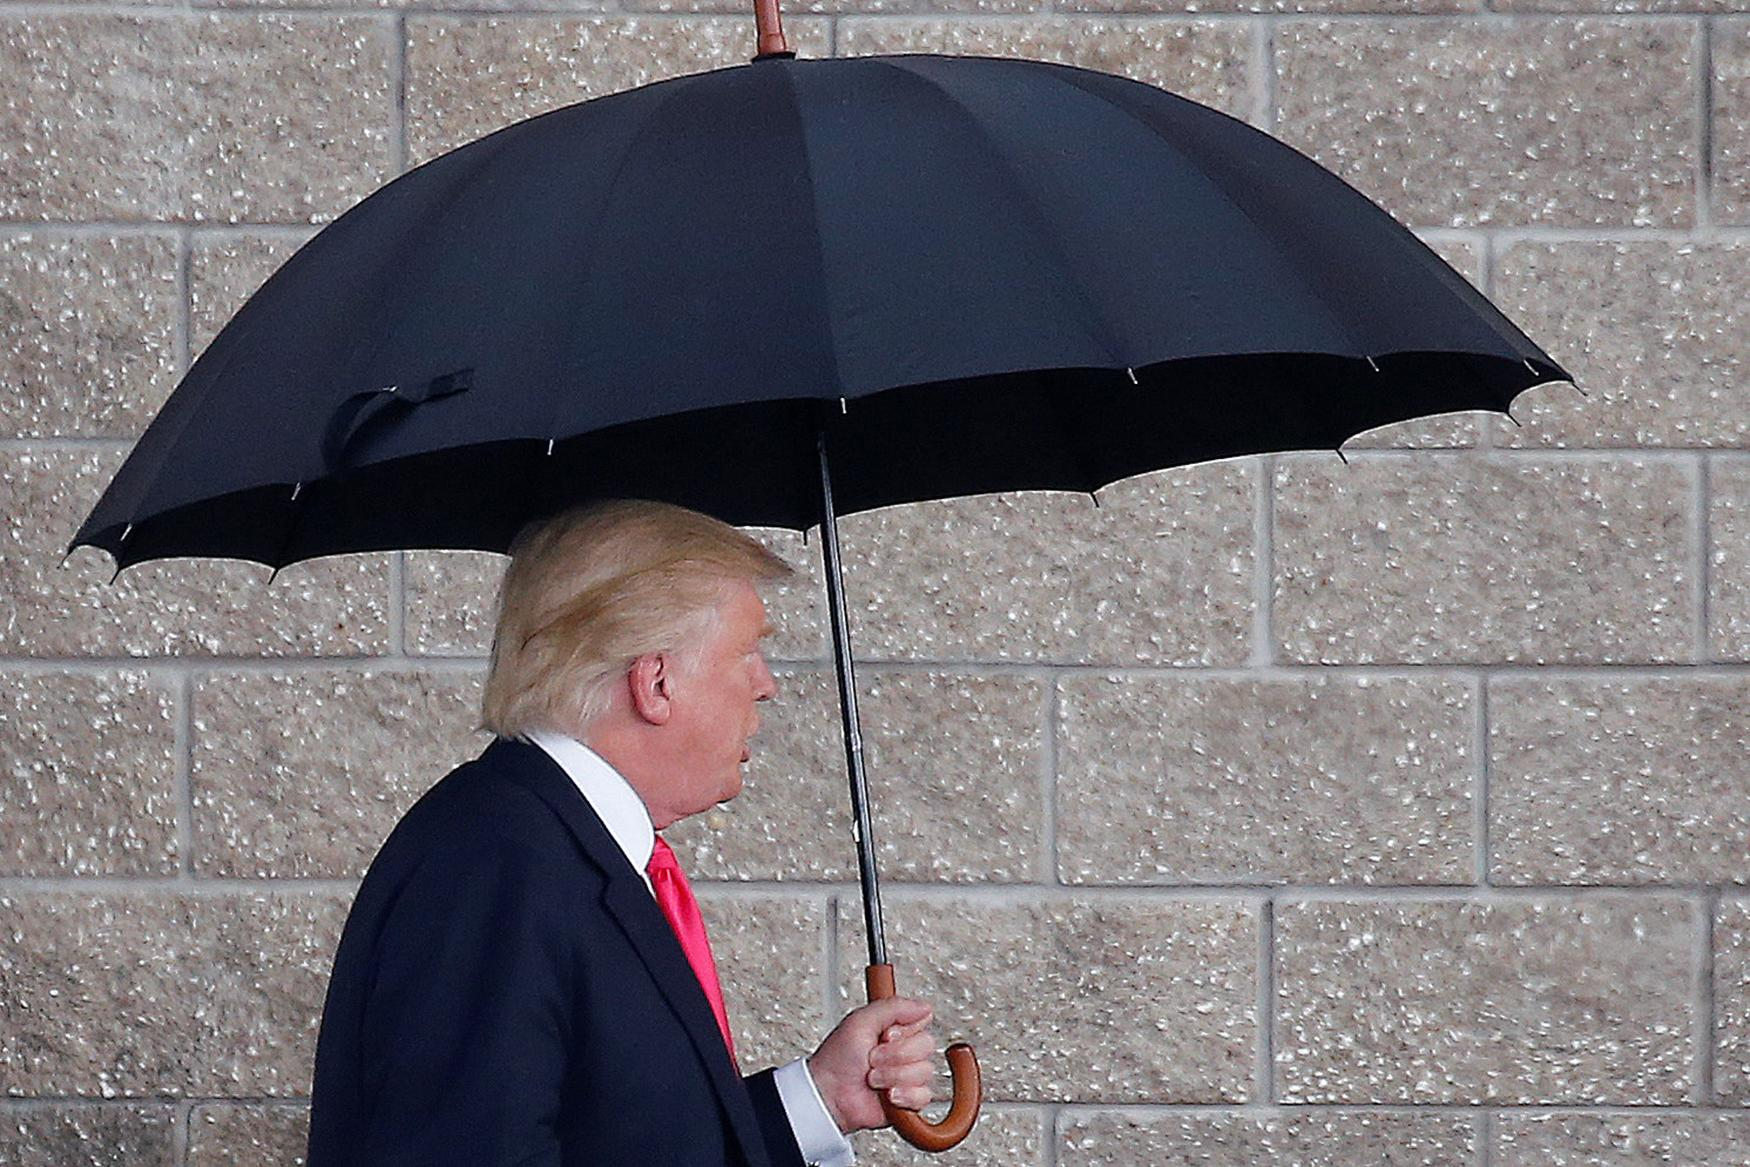 <p>Republican presidential nominee Donald Trump arrives in the rain for a campaign rally in Tampa, Aug. 24, 2016. (Photo: Carlo Allegri/Reuters) </p>